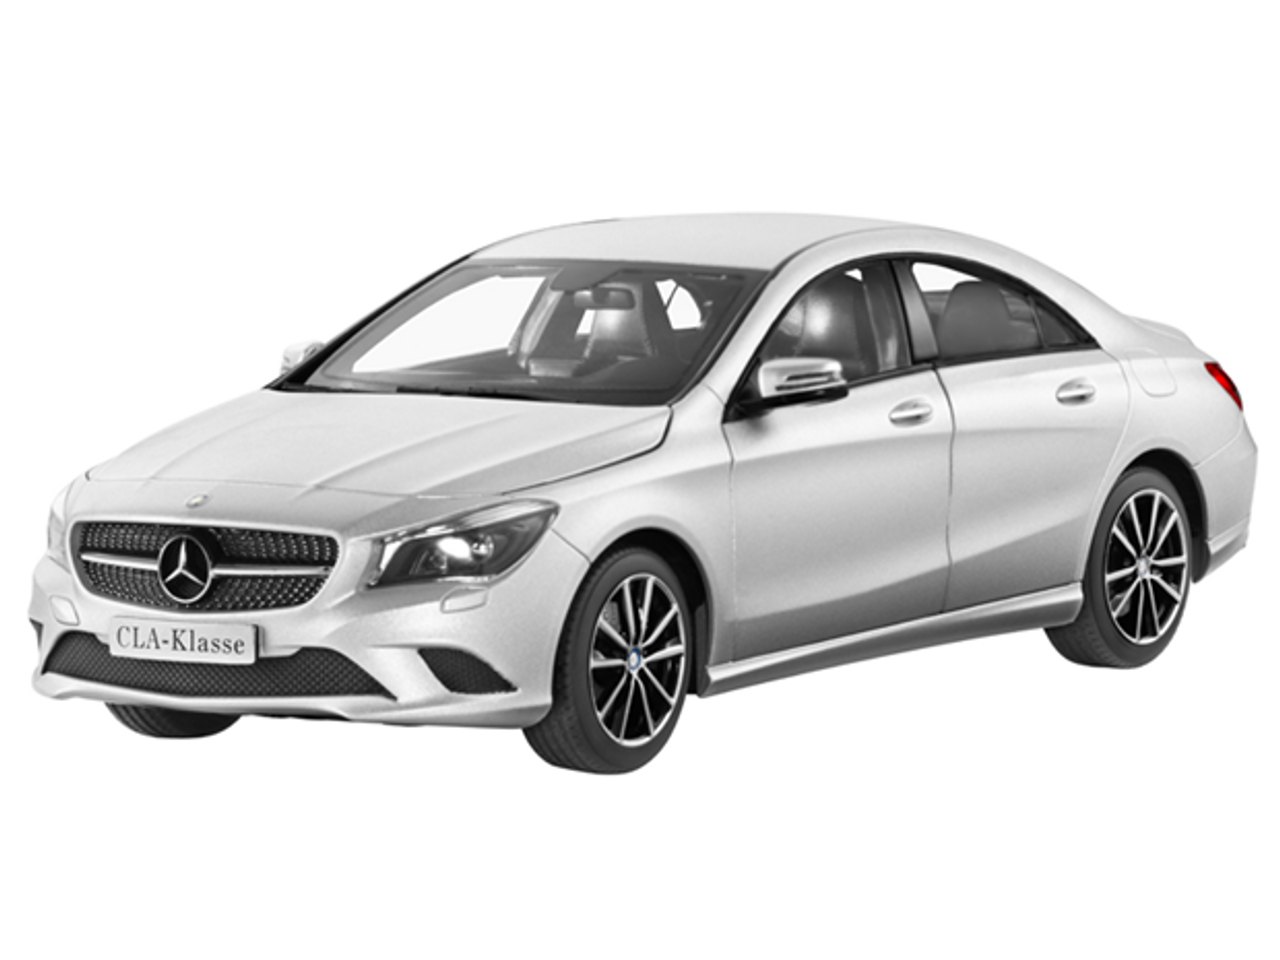 1/18 Dealer Edition Mercedes-Benz CLA (Silver) Diecast Car Model